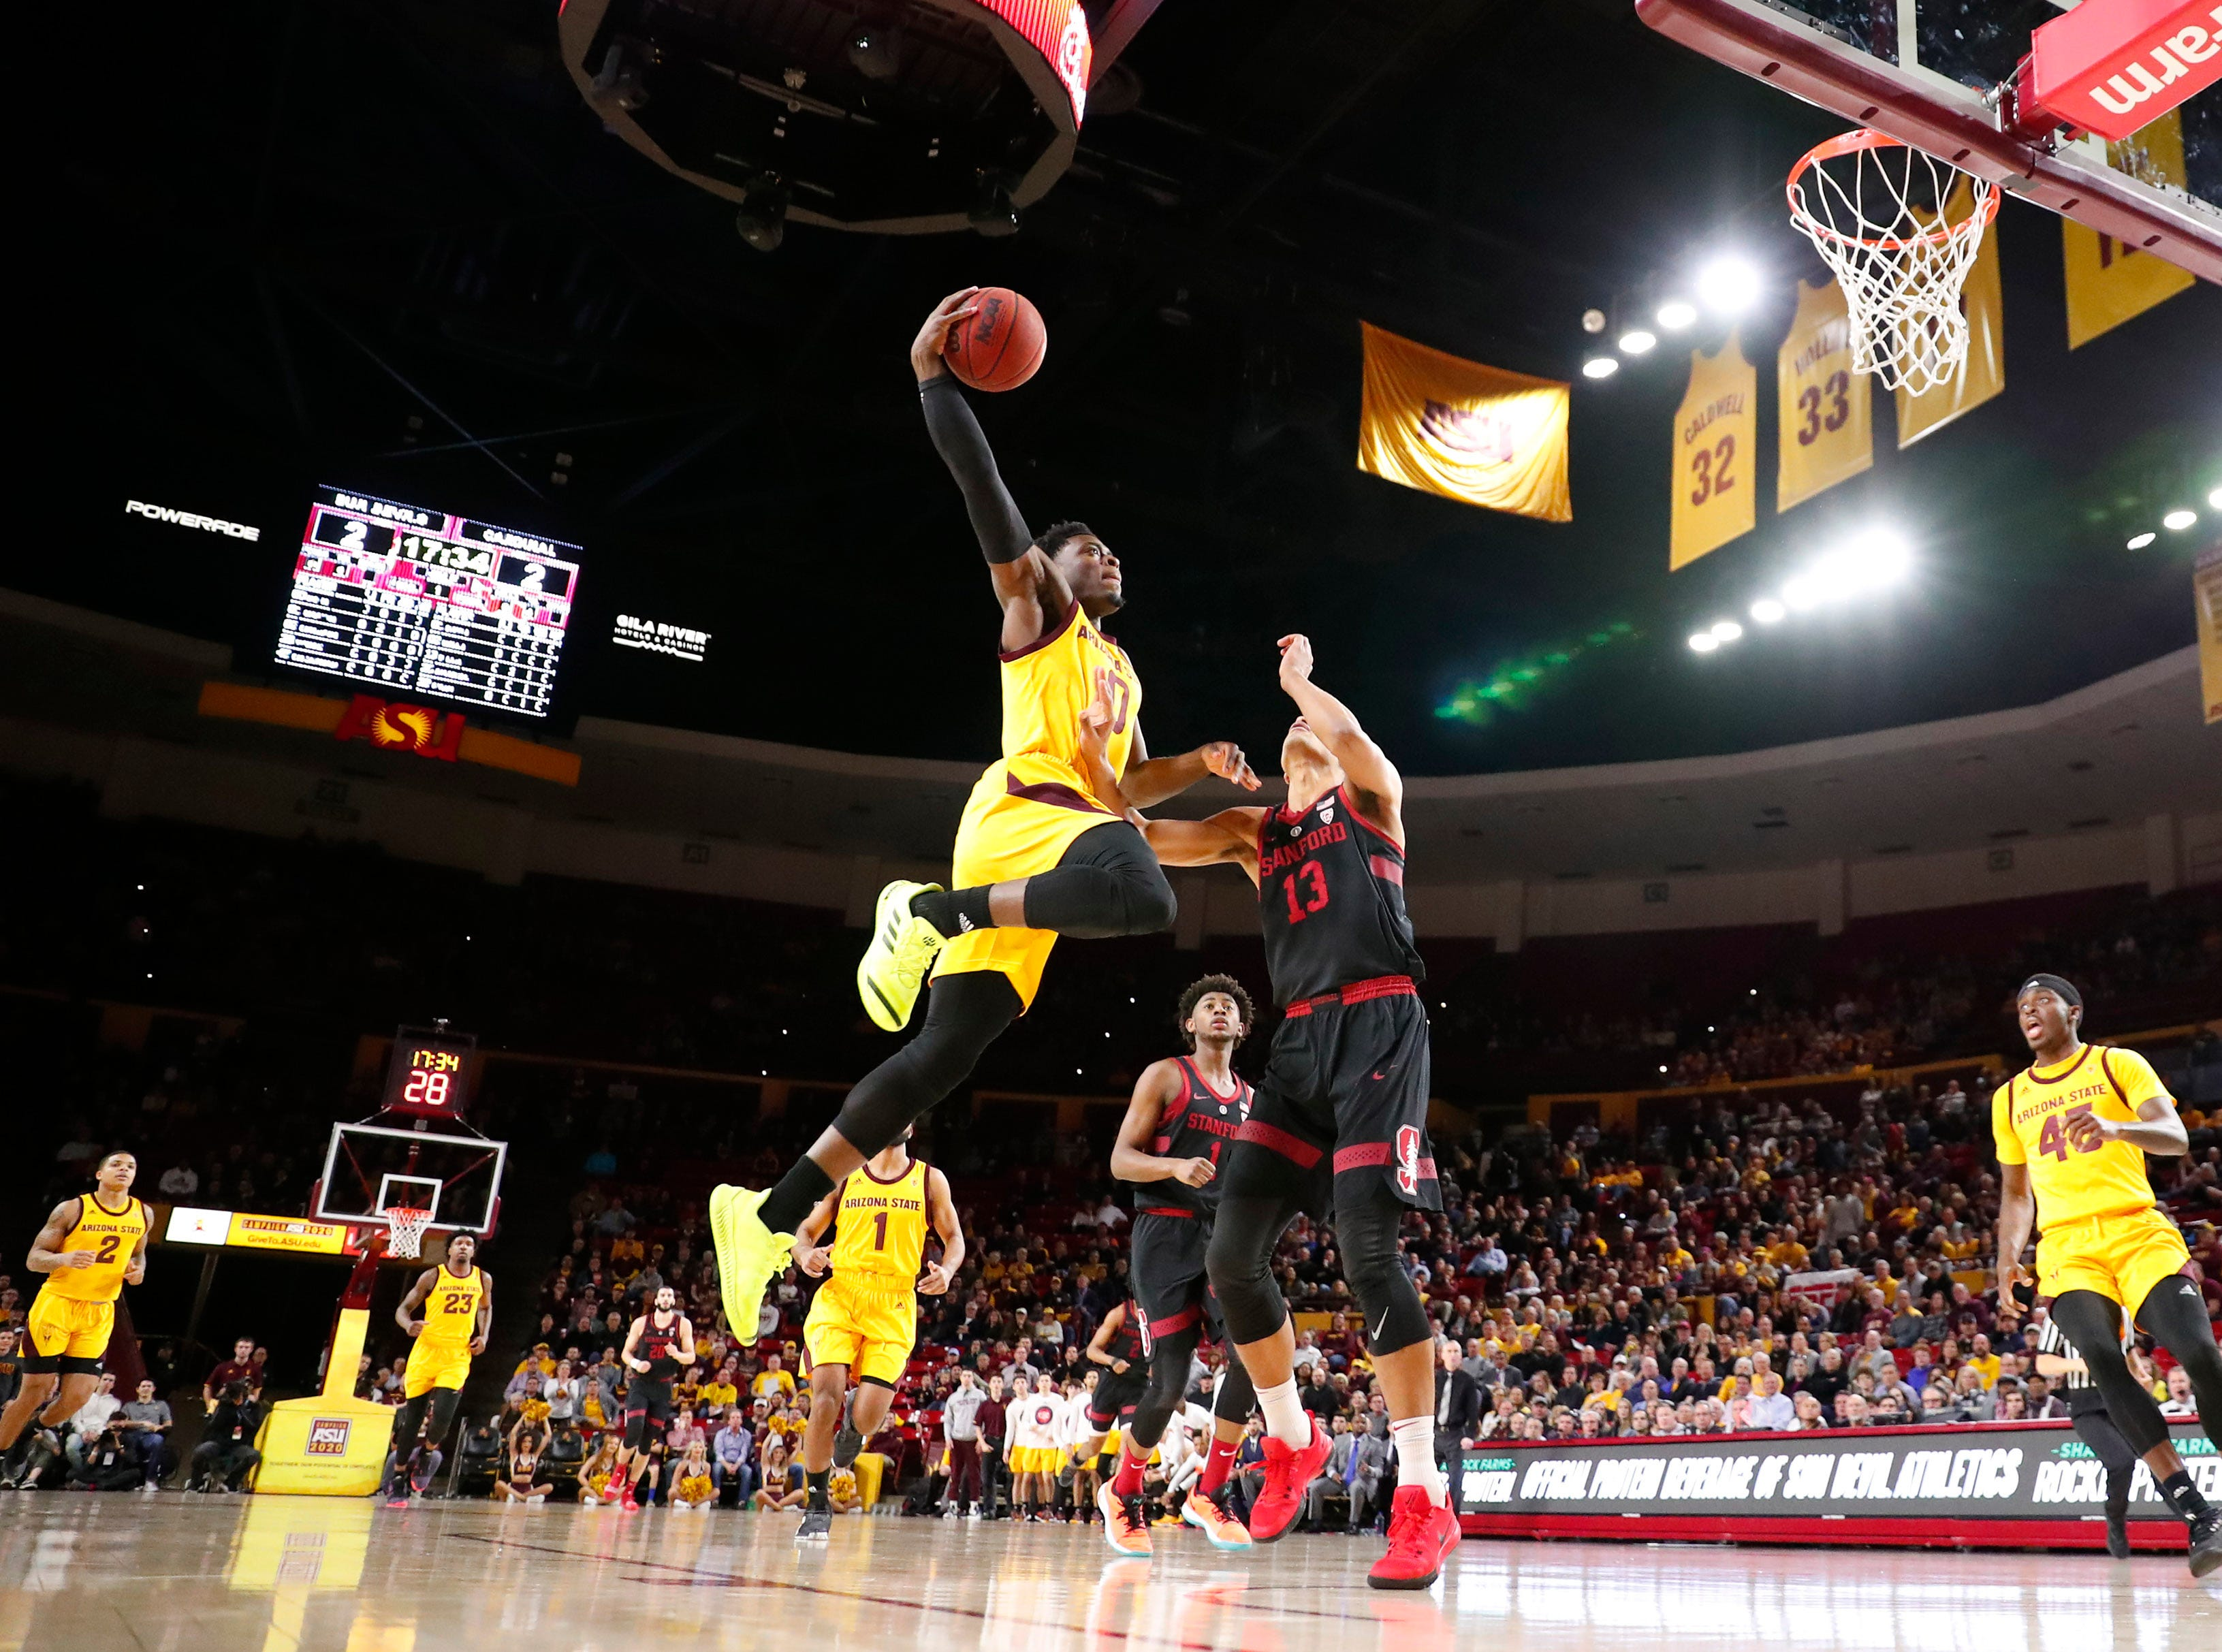 Arizona State guard Luguentz Dort (0) rises up for a dunk against Stanford forward Oscar da Silva (13) during the first half in Tempe Feb. 20, 2019.